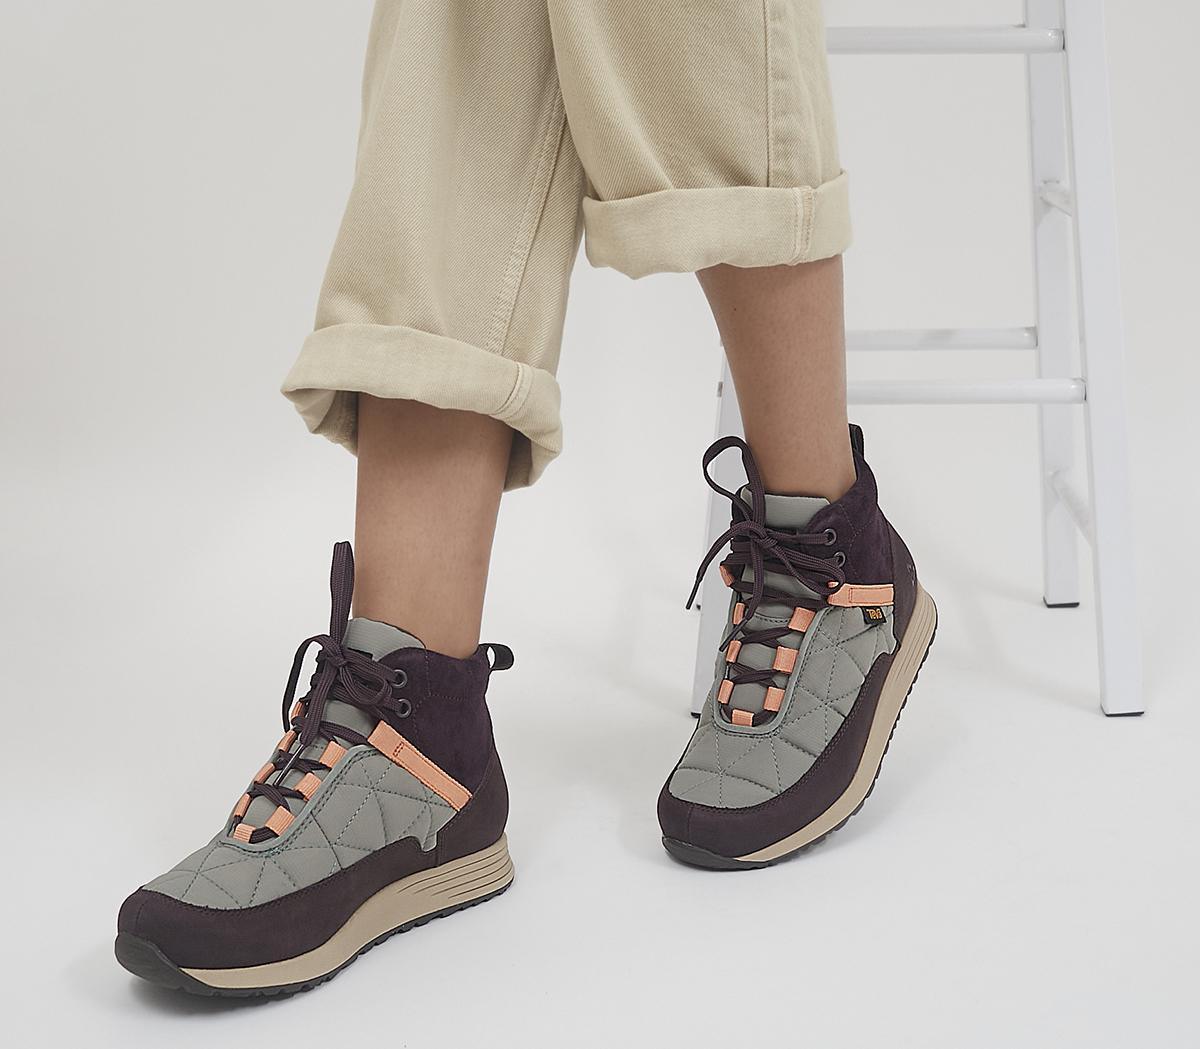 Ember Commute Boots